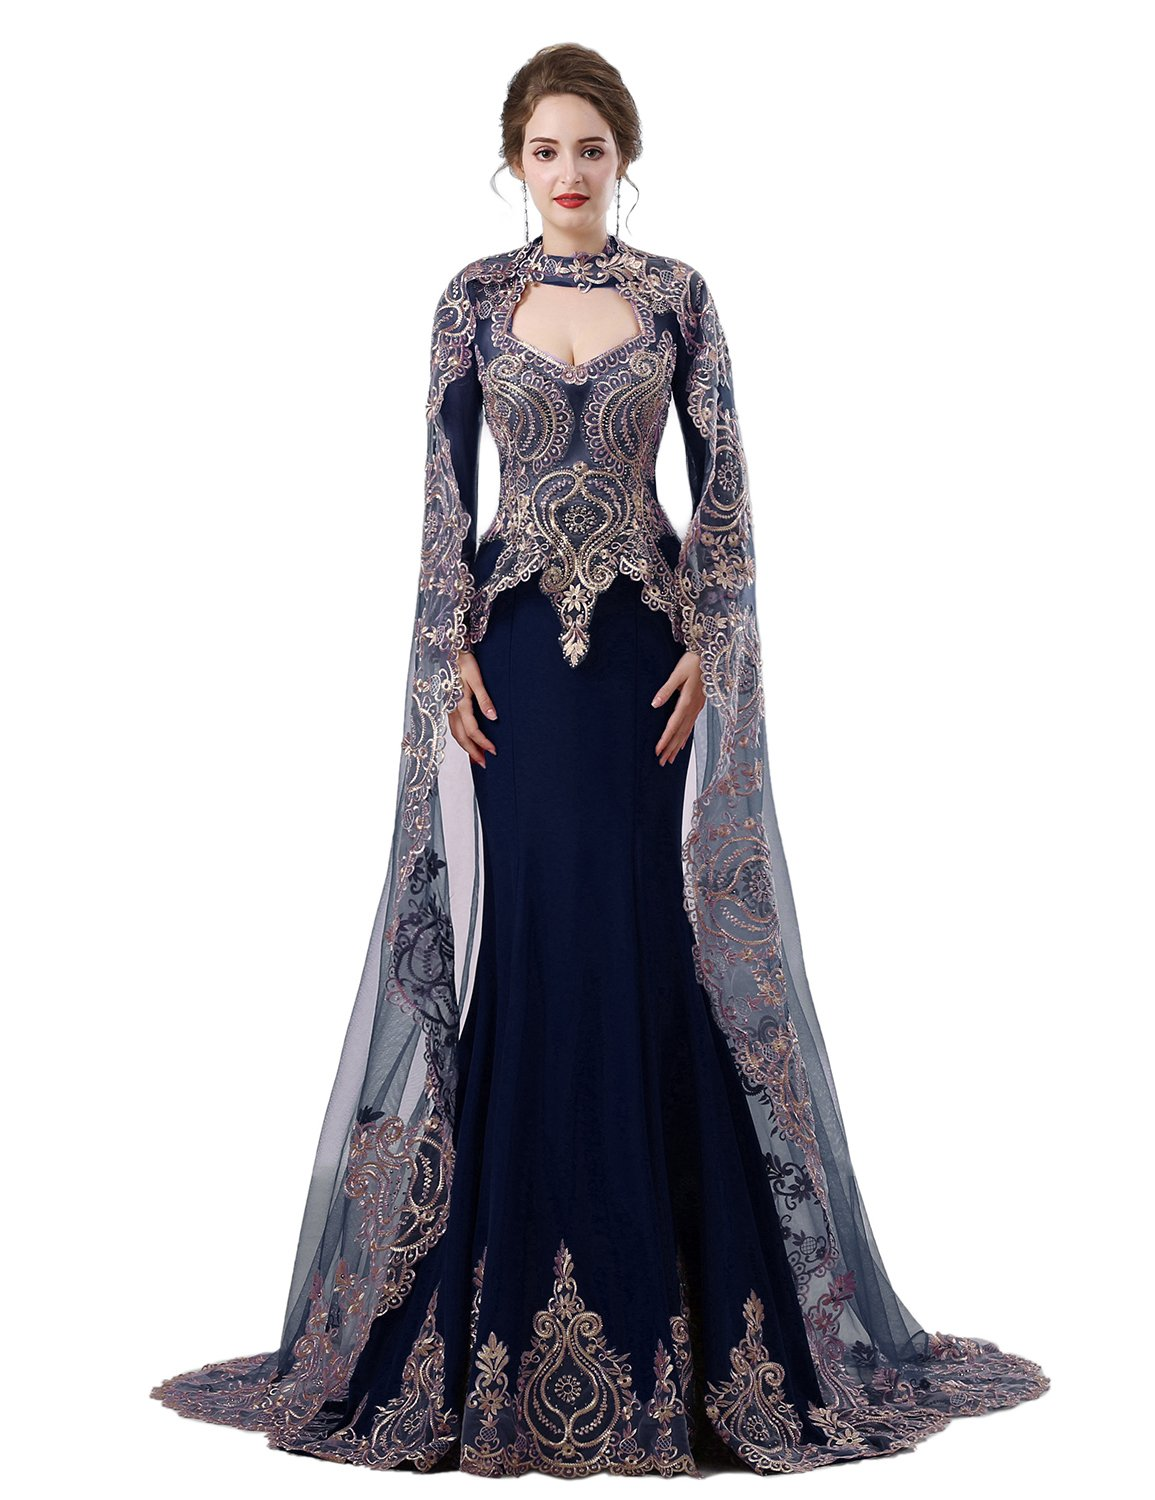 Elinadrs Sexy Satin Long Sleeves Evening Dress With Veil Bead Mermaid Formal Gowns Navy Blue US16